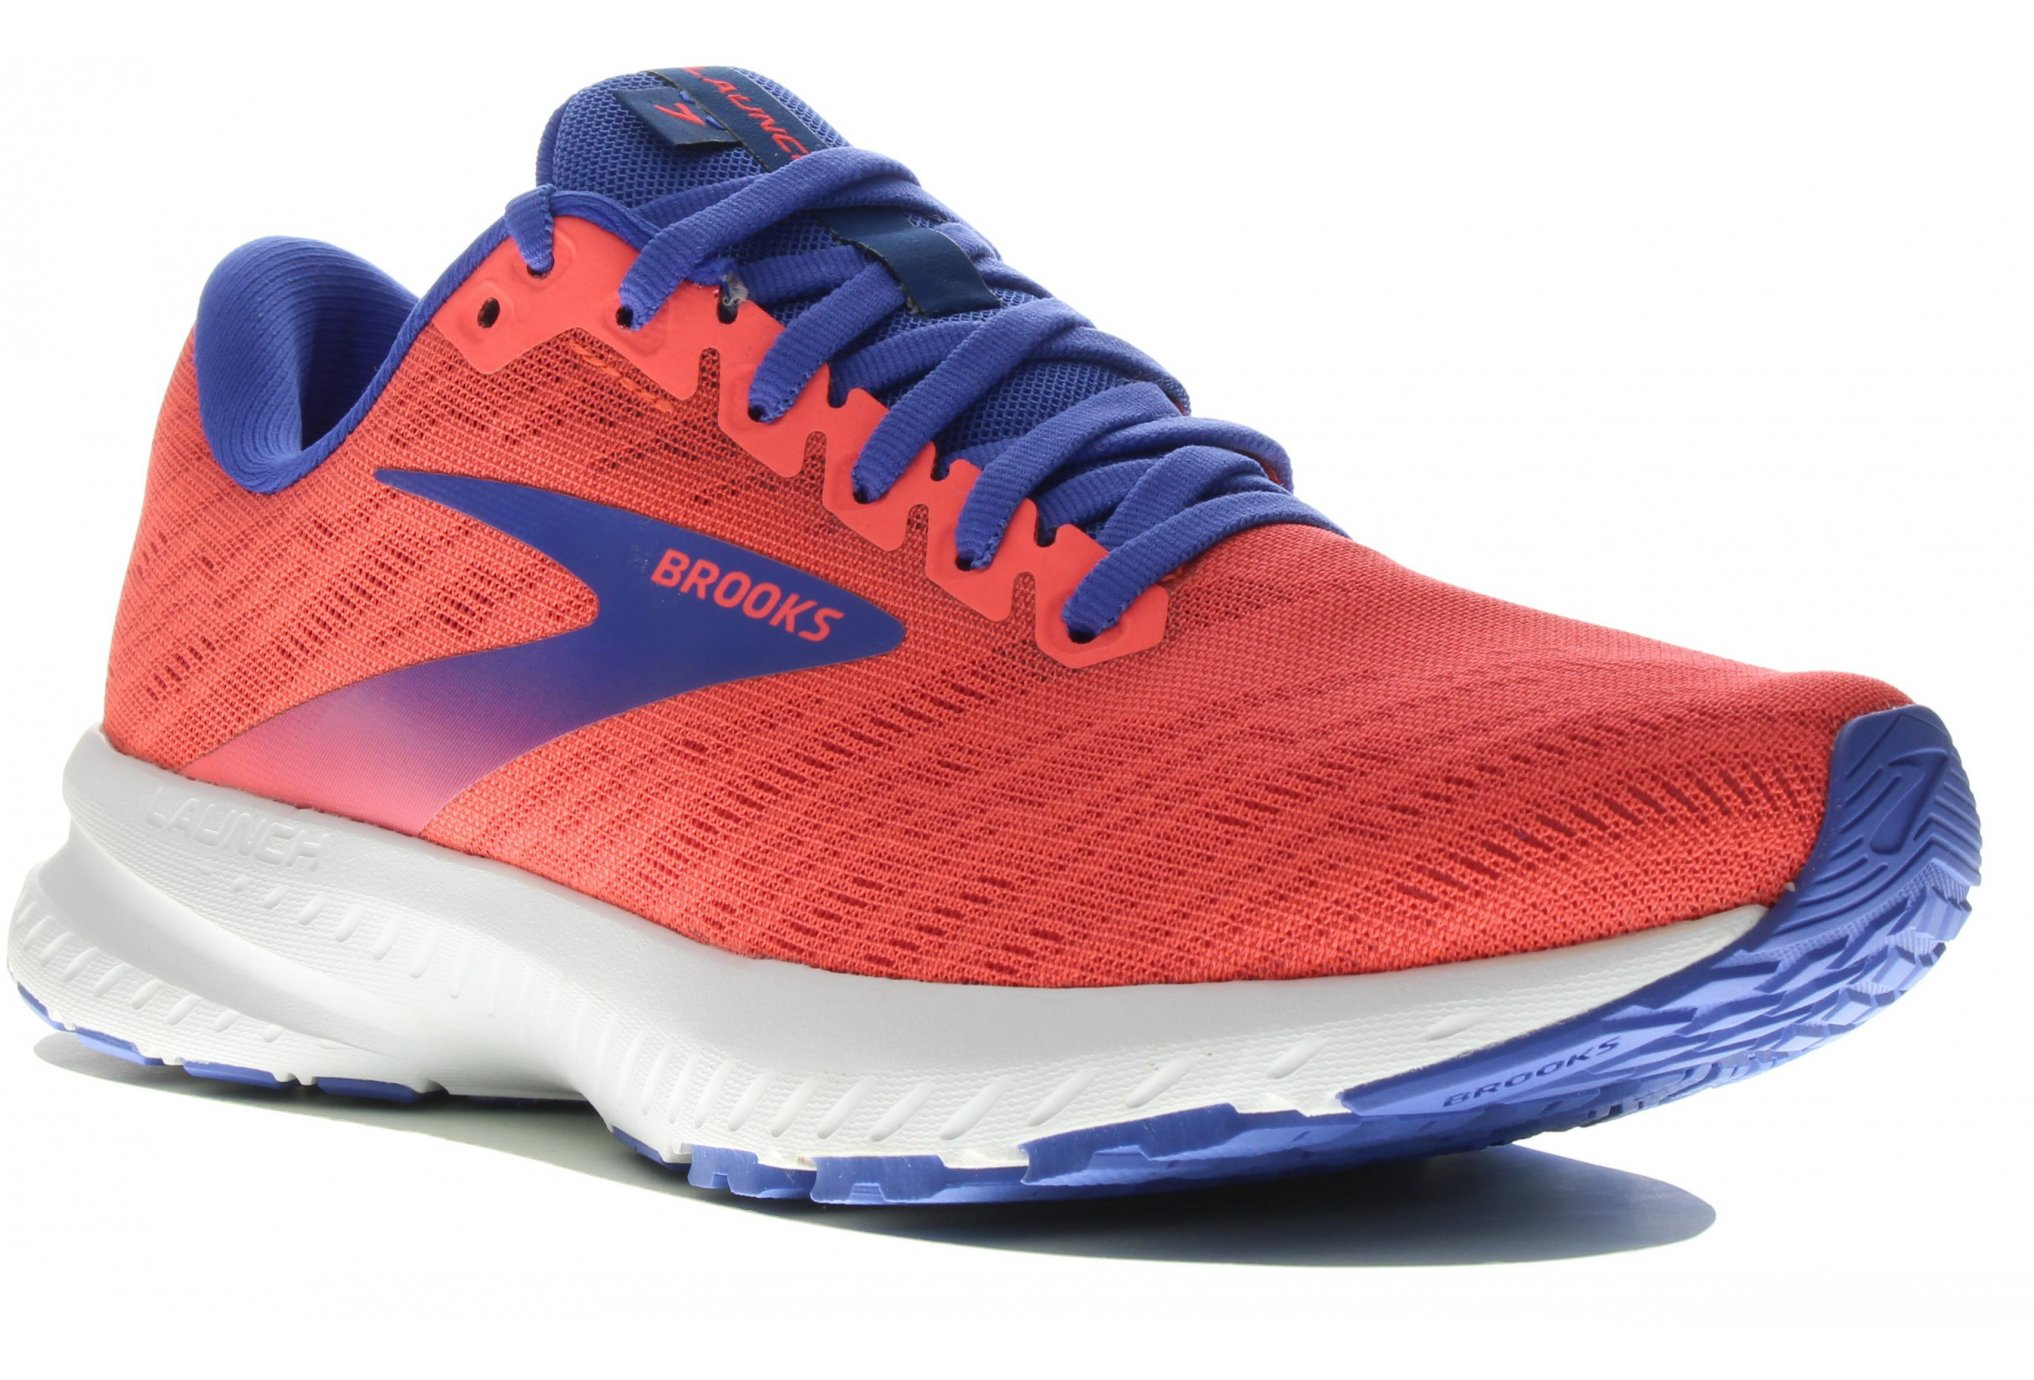 Brooks Launch 7 Chaussures running femme